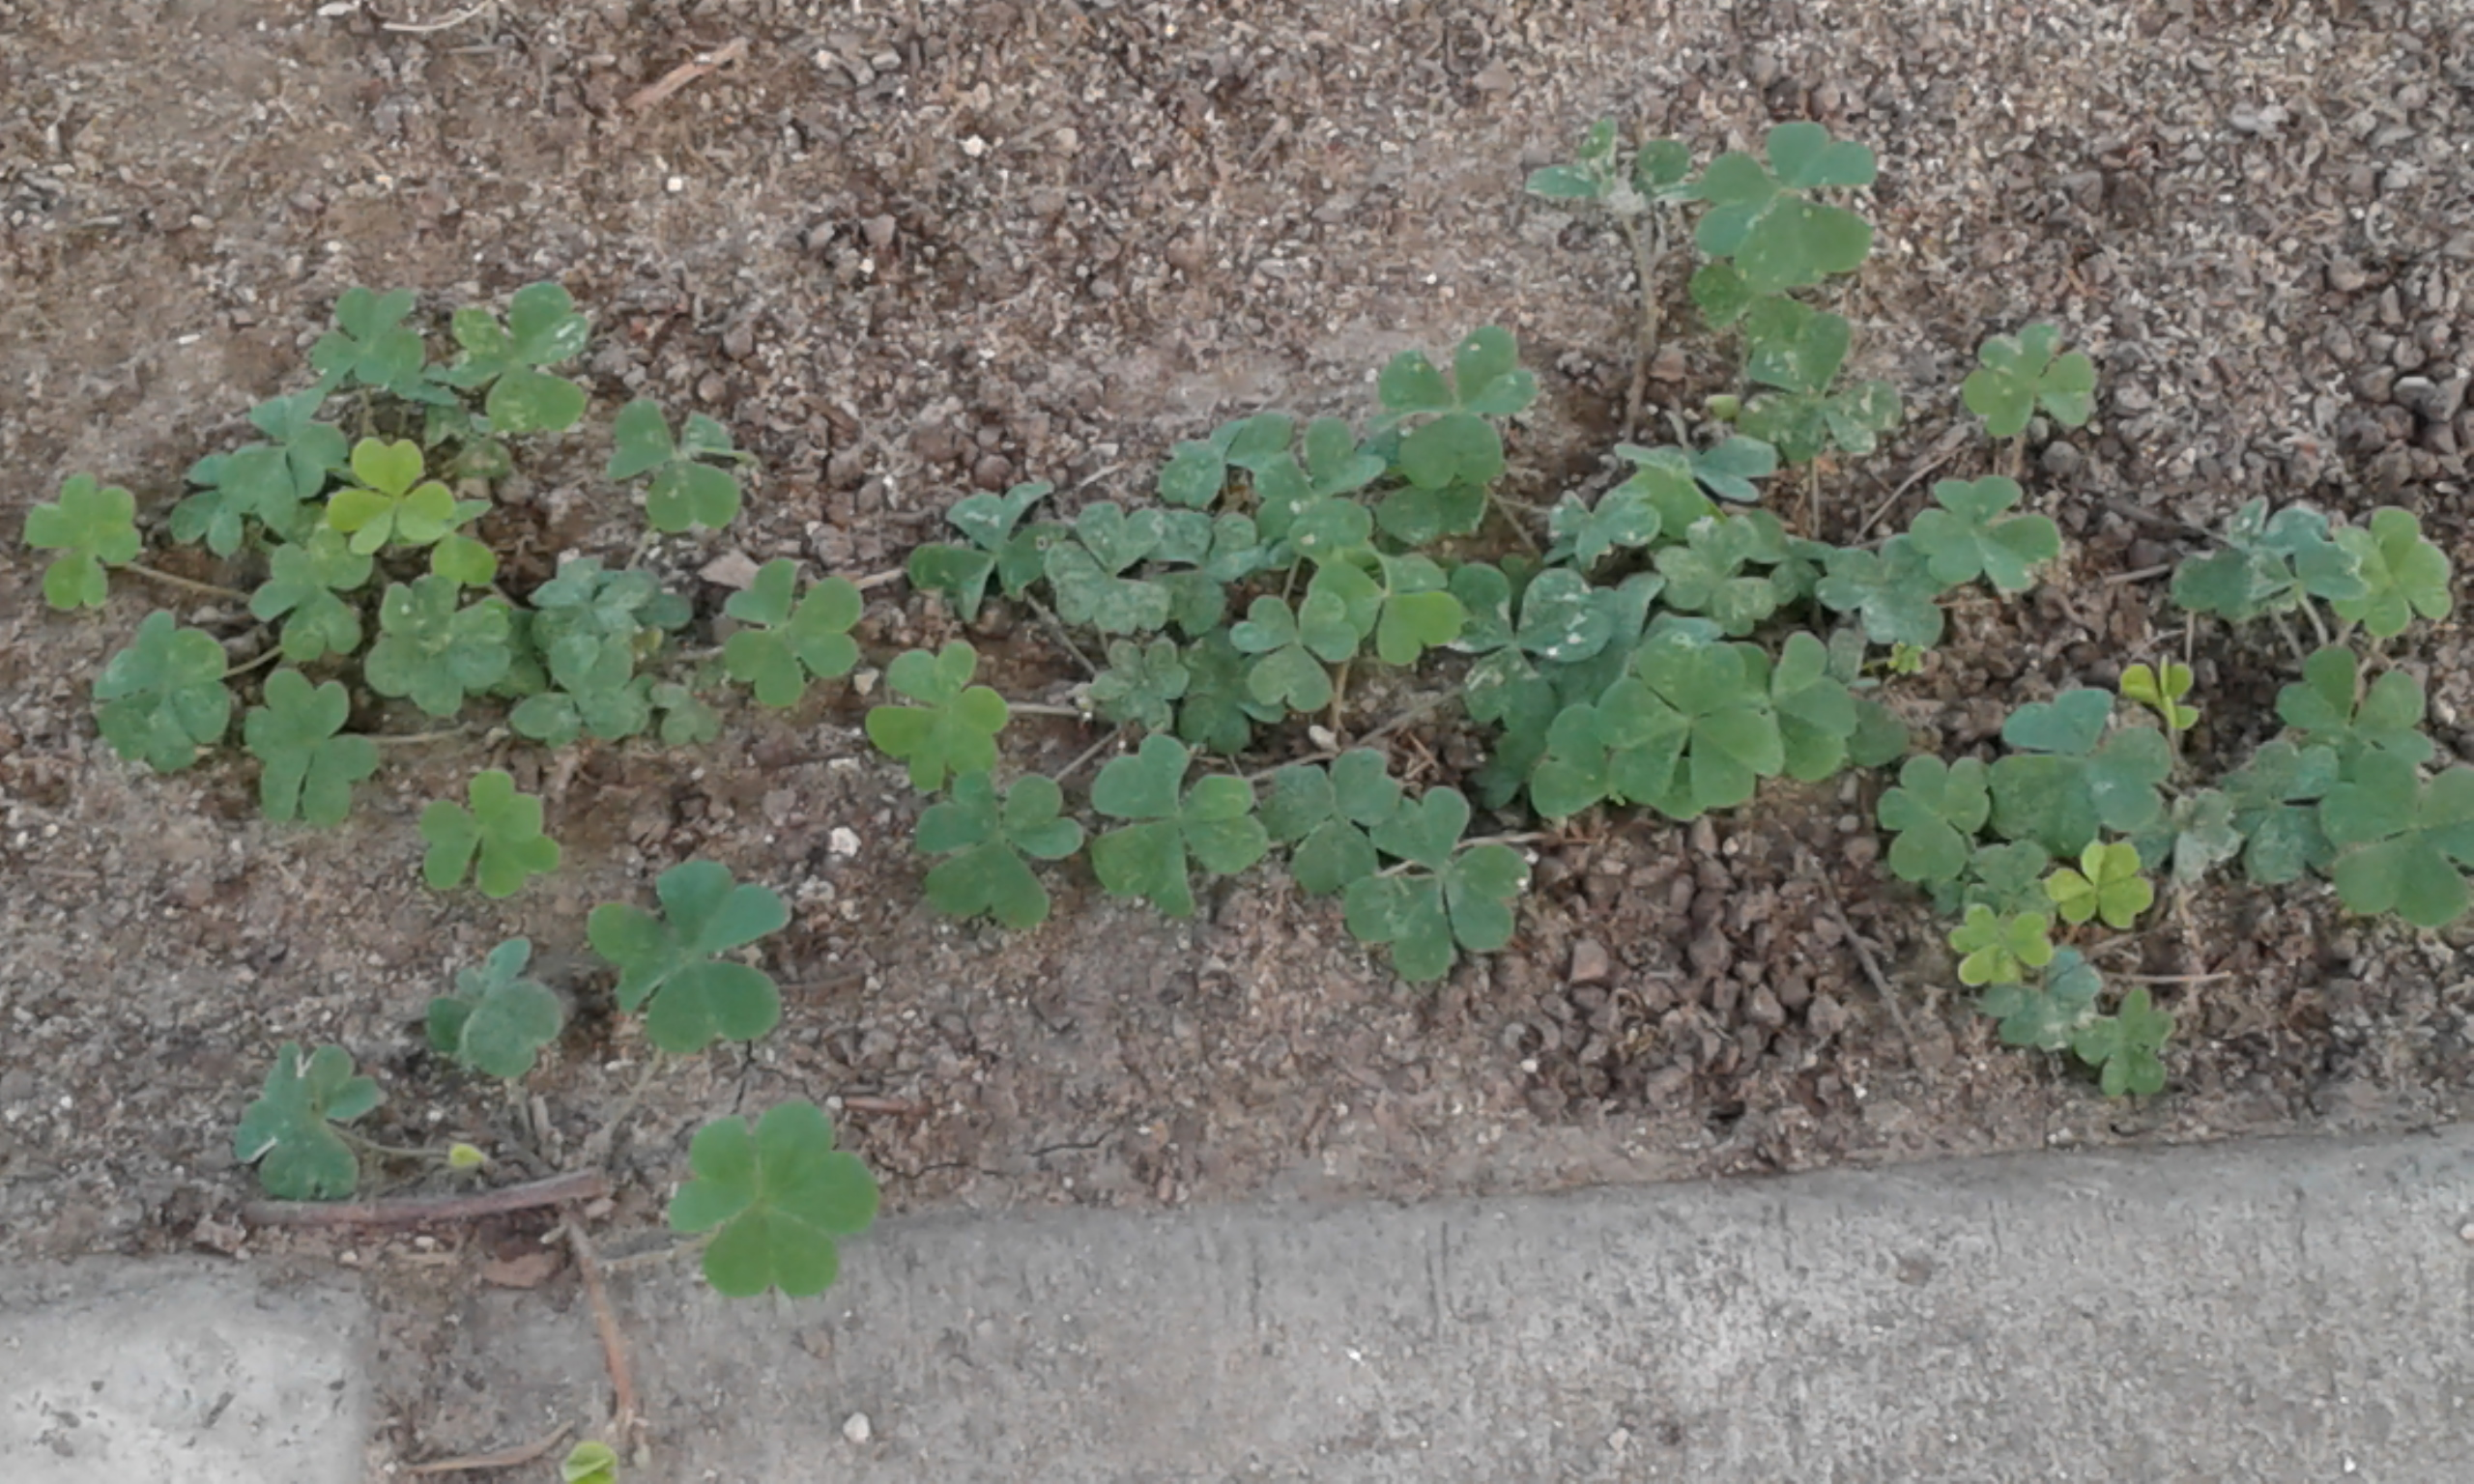 https://upload.wikimedia.org/wikipedia/commons/8/81/Shamrock_leaves.jpg